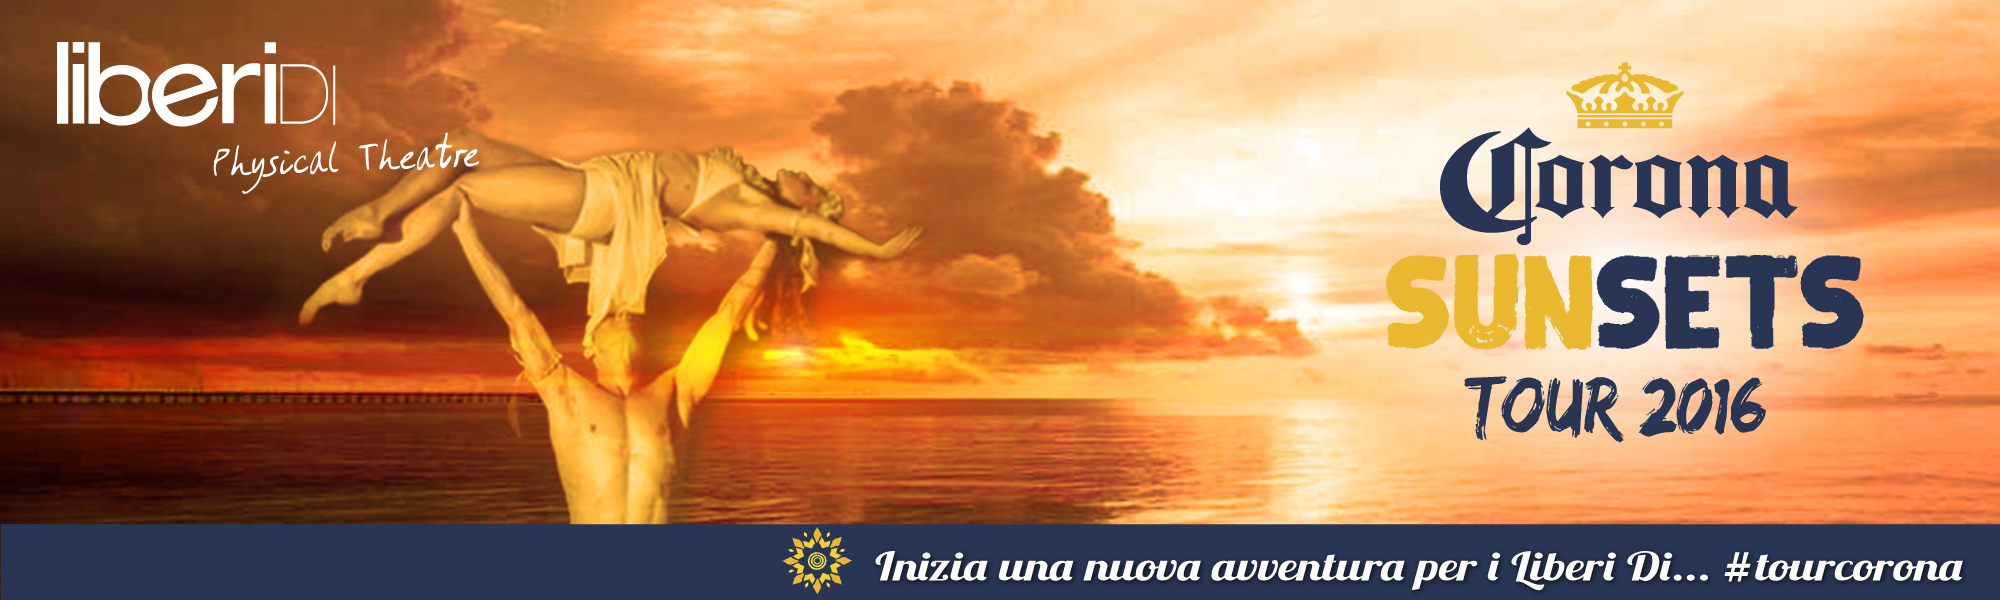 Corona Sunset Tour: i Liberi Di portano in giro l'estate!